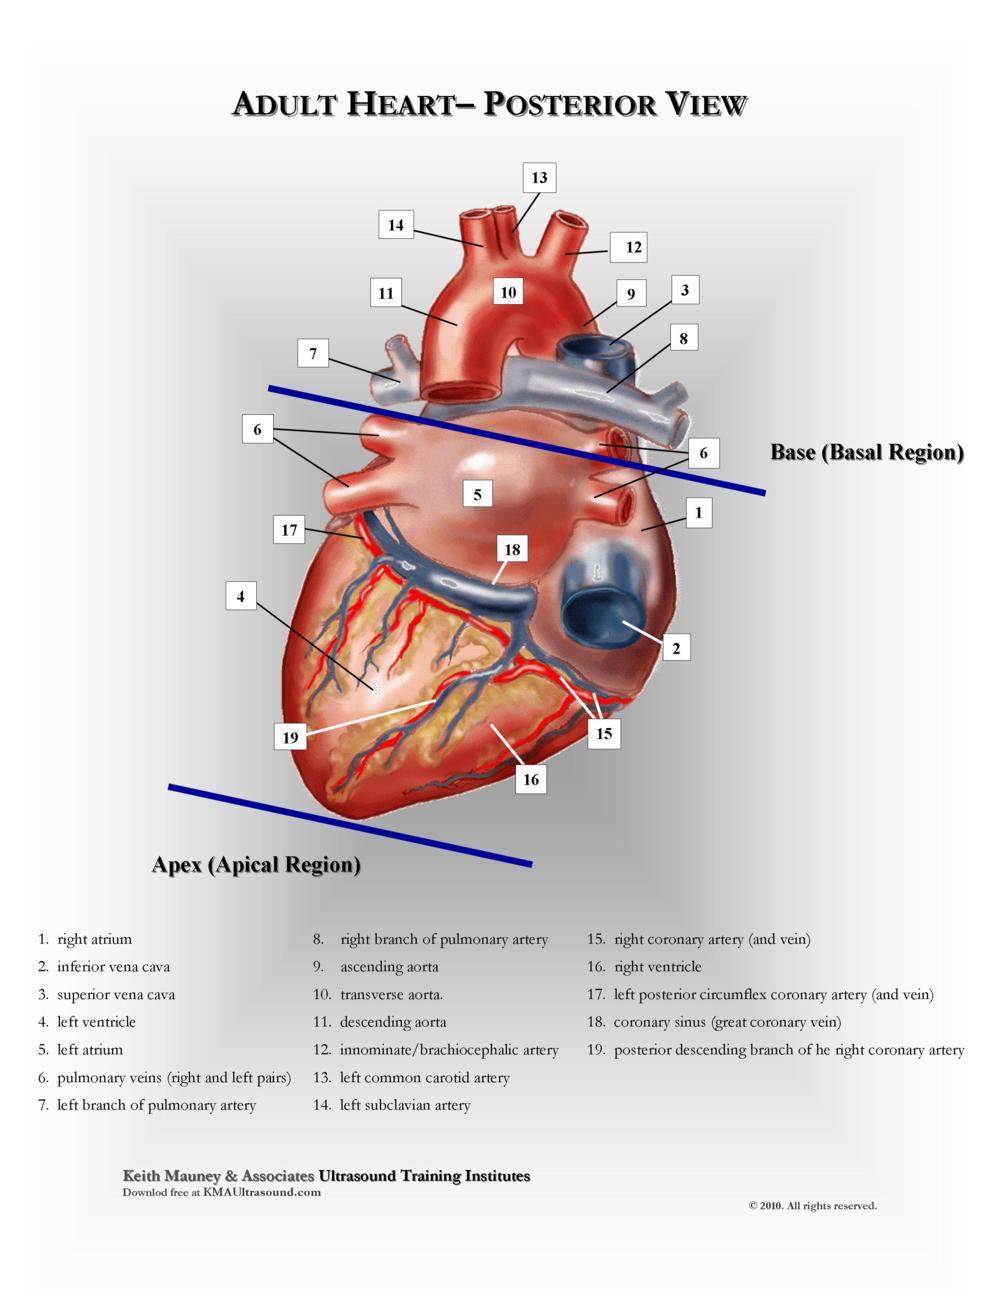 KMA Ultrasound Adult Heart - Posterior View